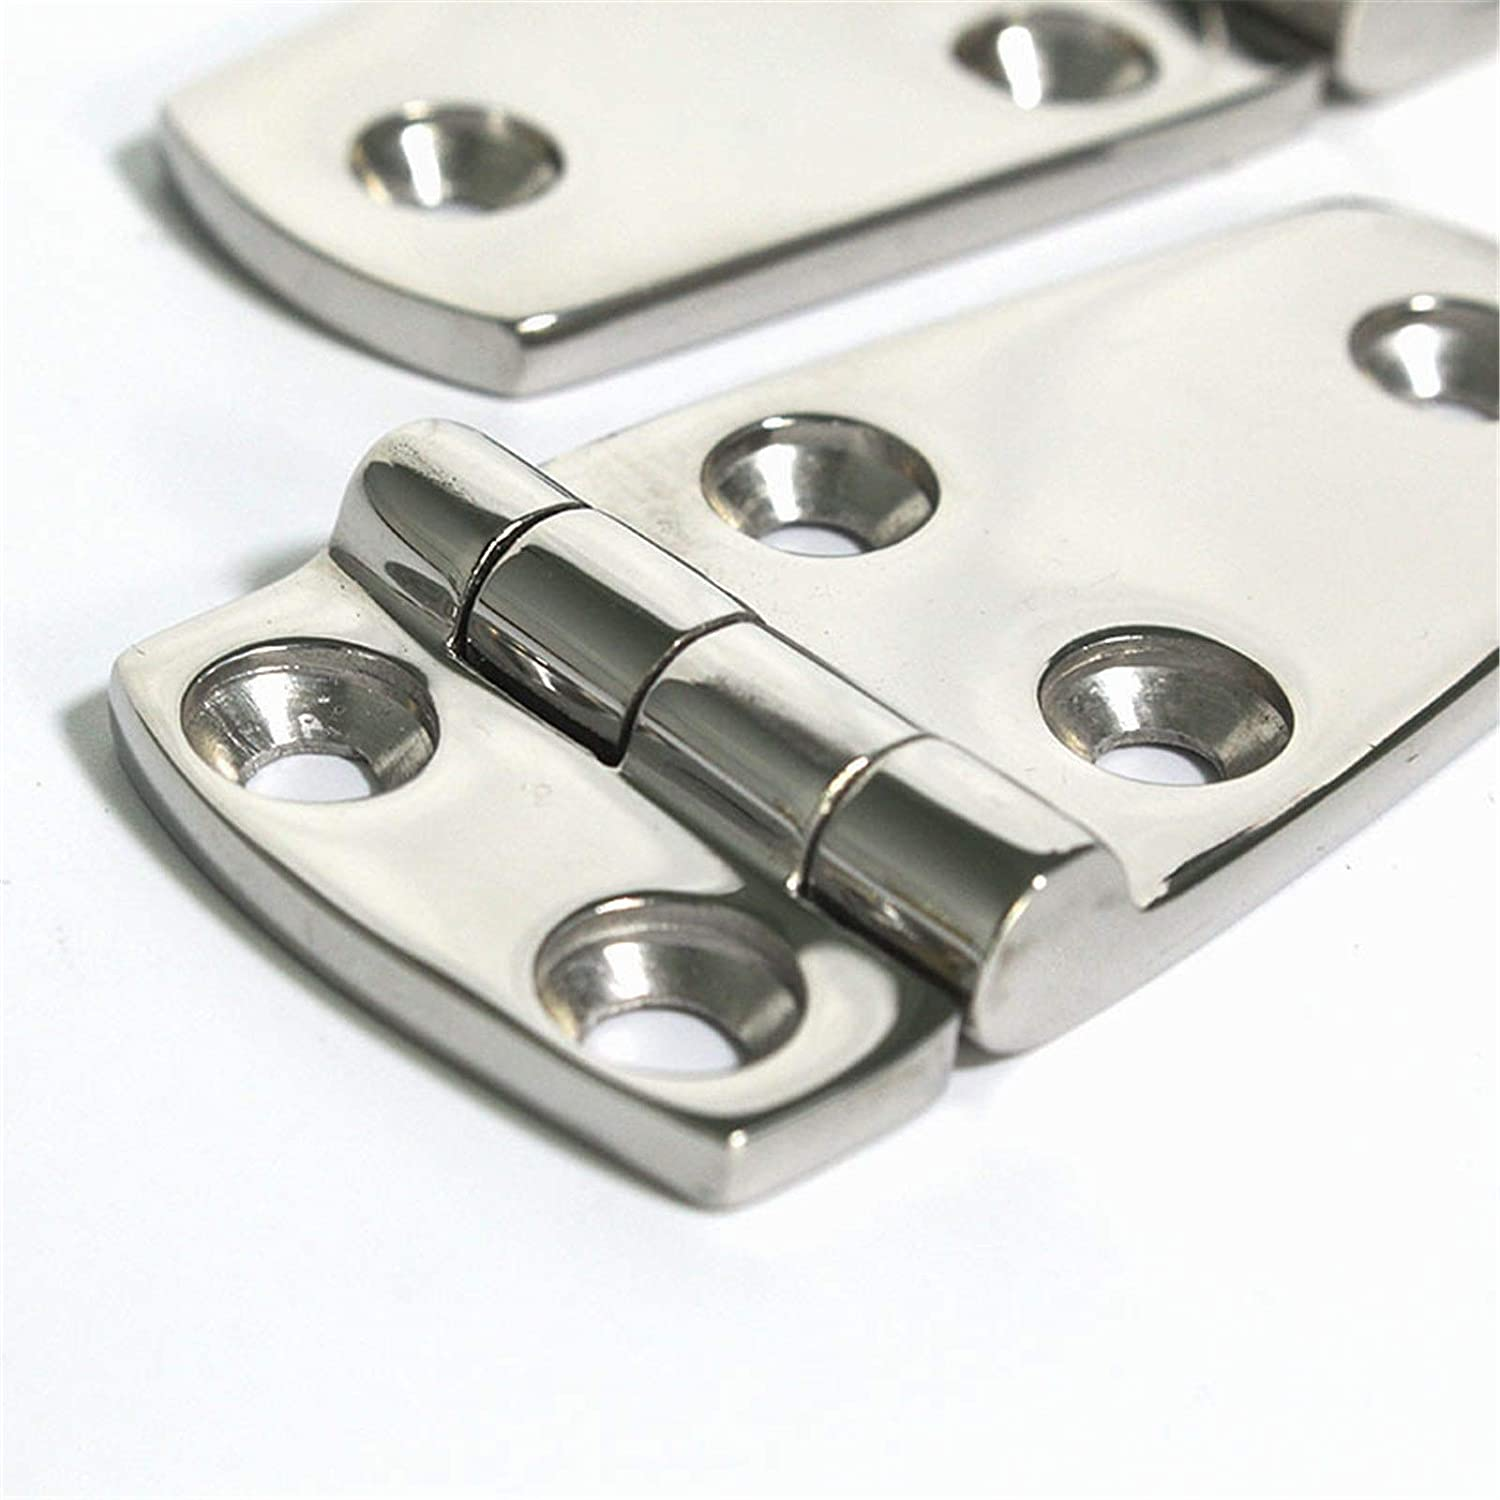 QERNTPEY Cabinet Door Hinge Five-Hole Stainless Steel Hinge Stainless Steel Door and Window Cabinet Building General Thickened Hinge Hinge Strong and Sturdy Color : Silver, Size : 7.6x3.8cm